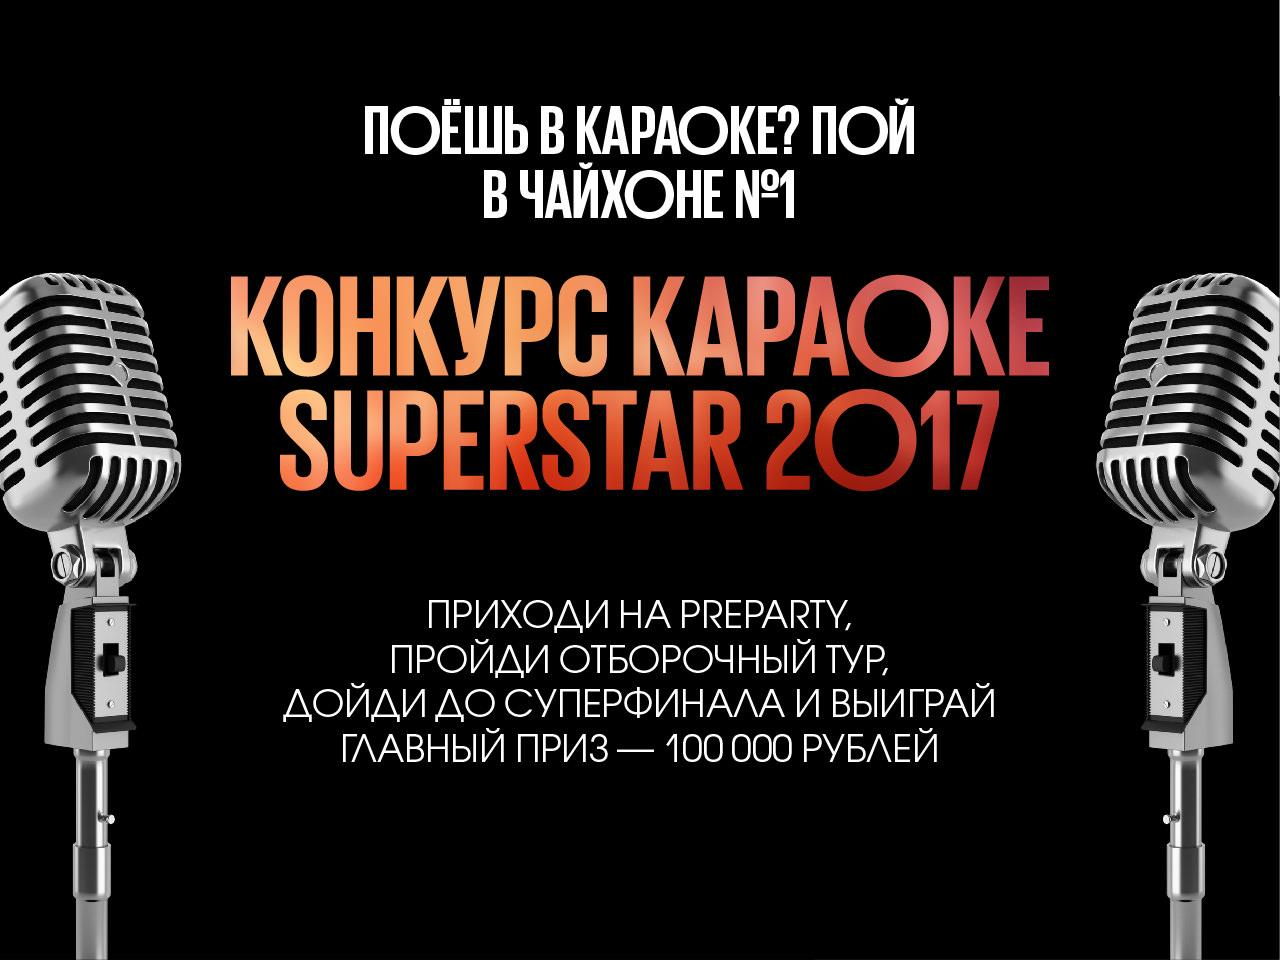 КАРАОКЕ SUPERSTAR 2017